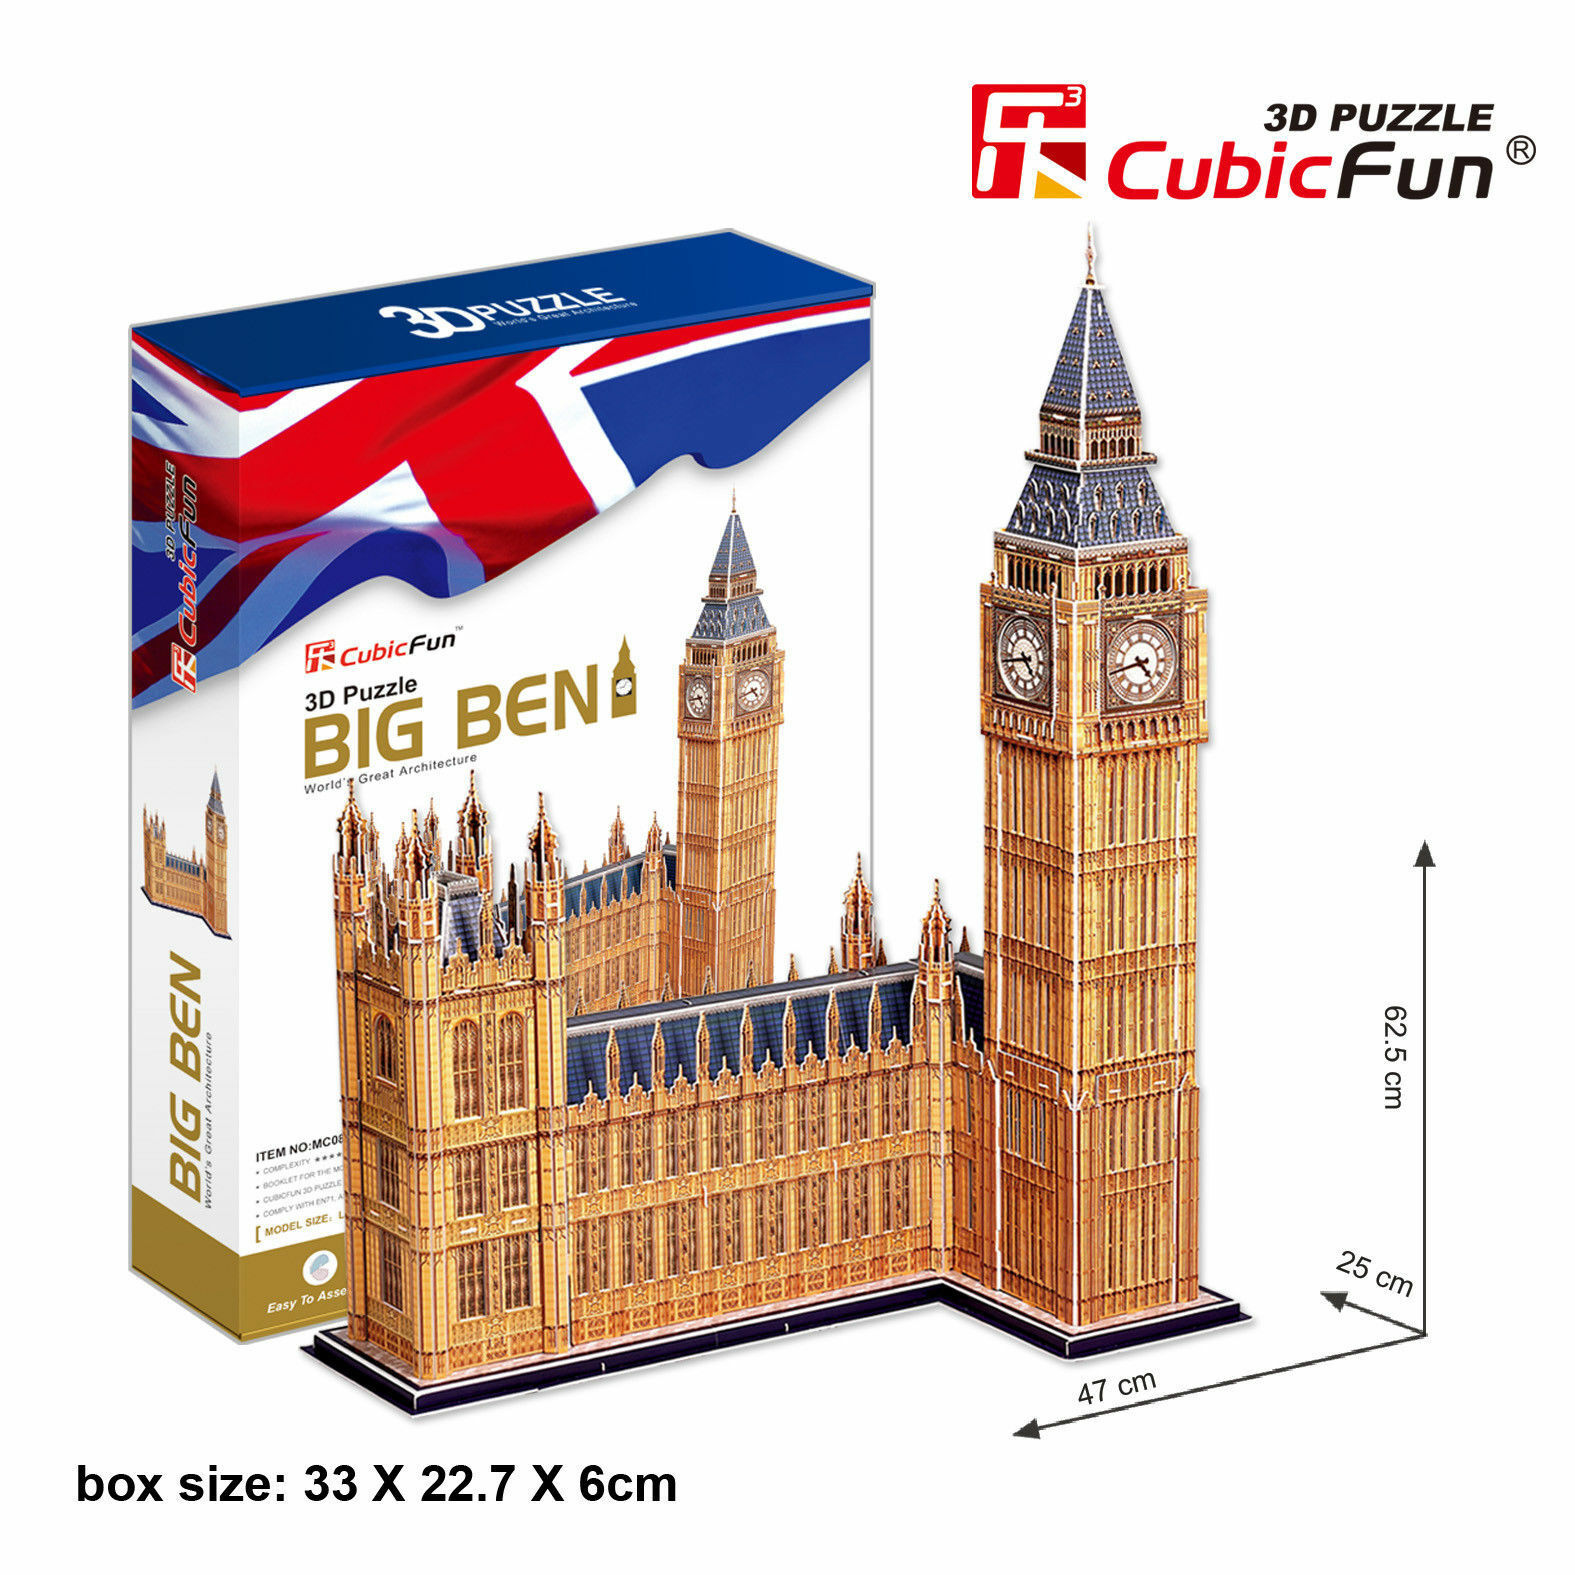 CubicFun Big Ben D Puzzle Jigsaw Model 116 Pieces 62.5x25x47cm MC087h